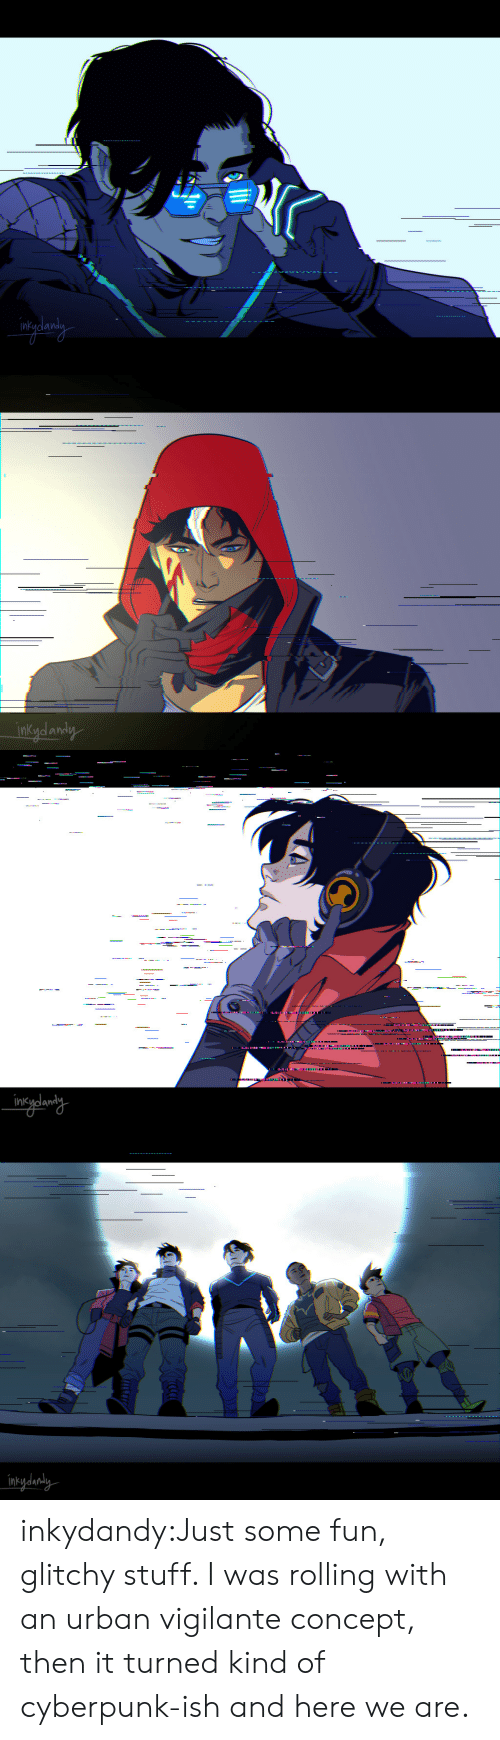 cyberpunk: inkydandy   ------.-  .  intydanaly inkydandy:Just some fun, glitchy stuff. I was rolling with an urban vigilante concept, then it turned kind of cyberpunk-ish and here we are.